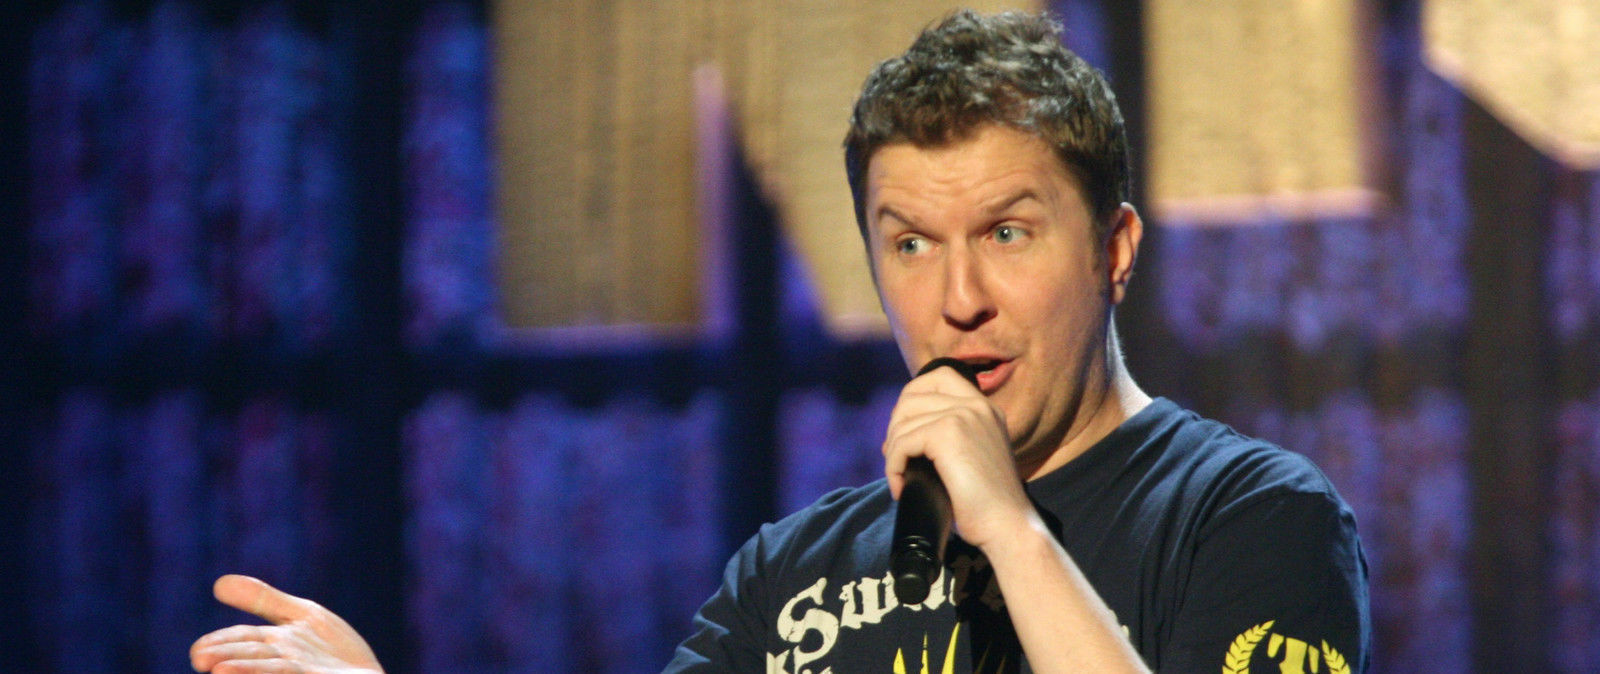 Nick Swardson Tickets (18+ or accompanied by guardian)